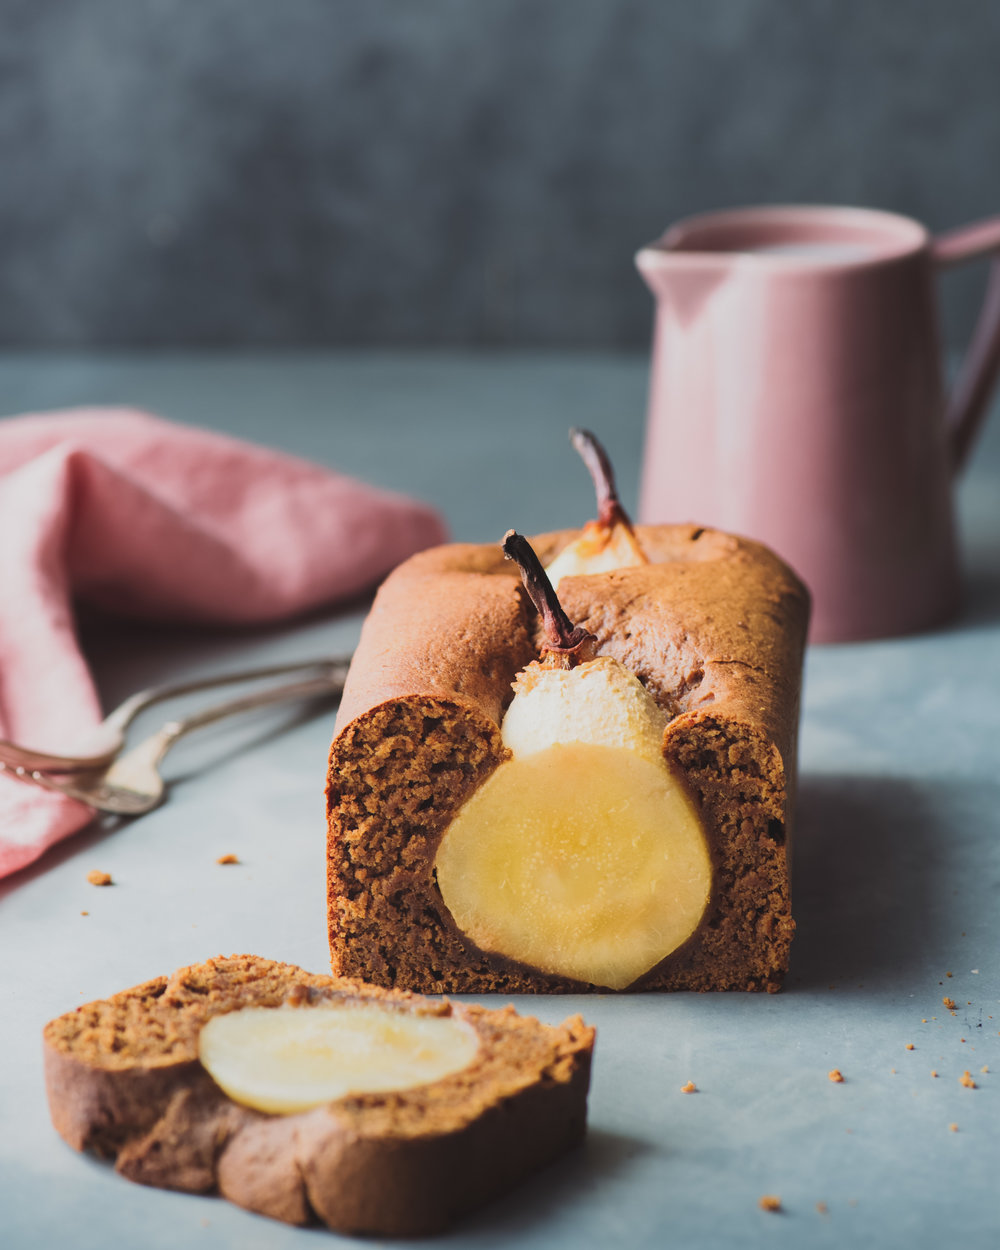 Gingerbread pear loaf LM (1 of 1).jpg